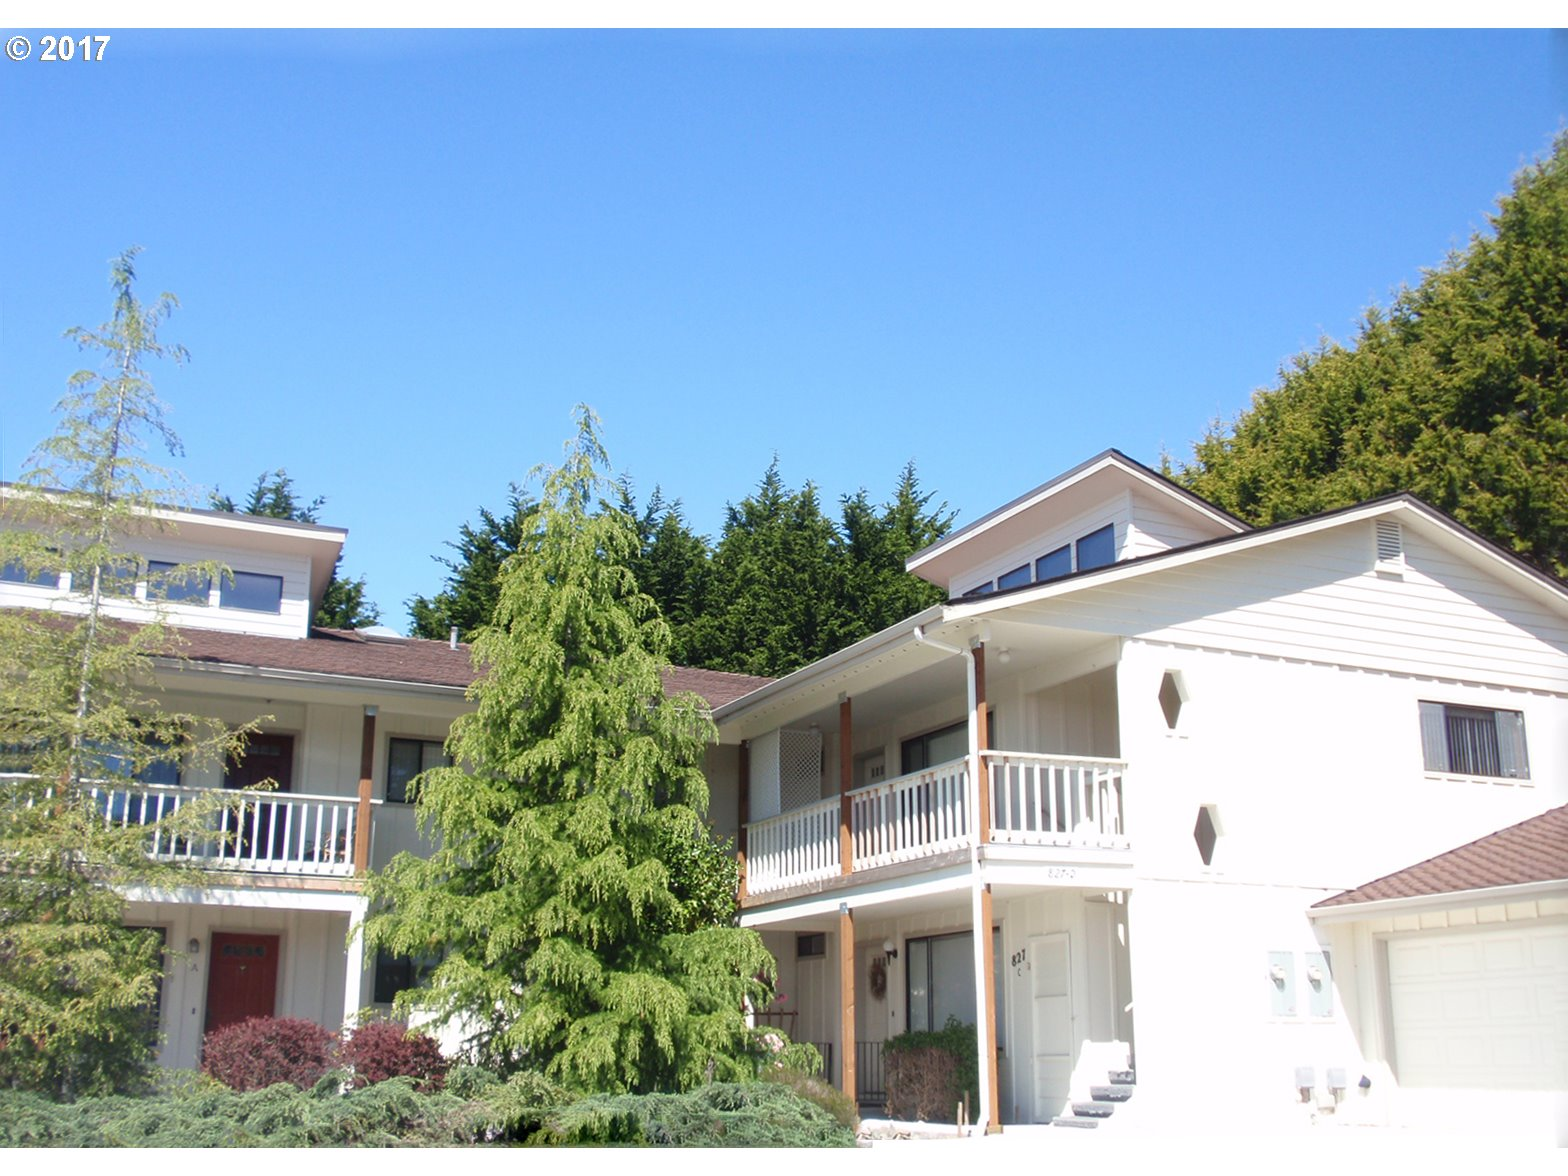 Brookings, OR 2 Bedroom Home For Sale